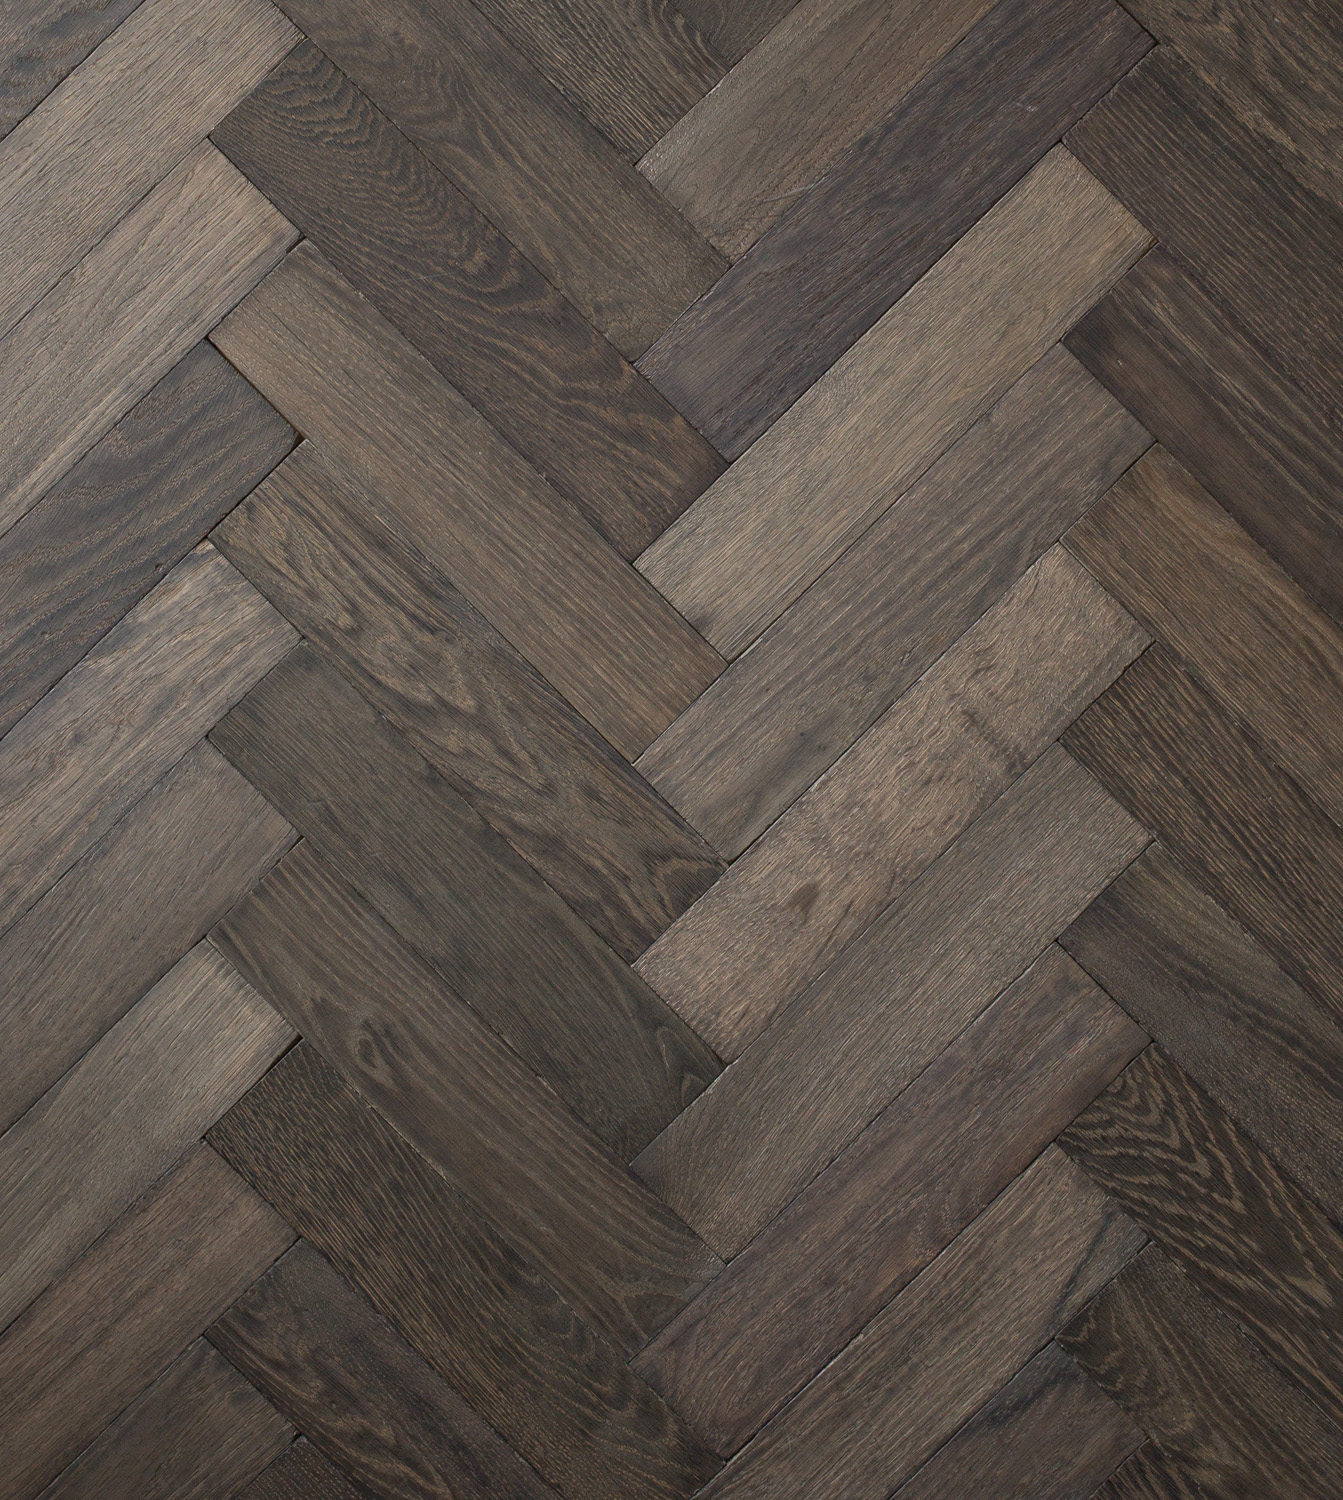 Rainshadow Oak Herringbone The New Amp Reclaimed